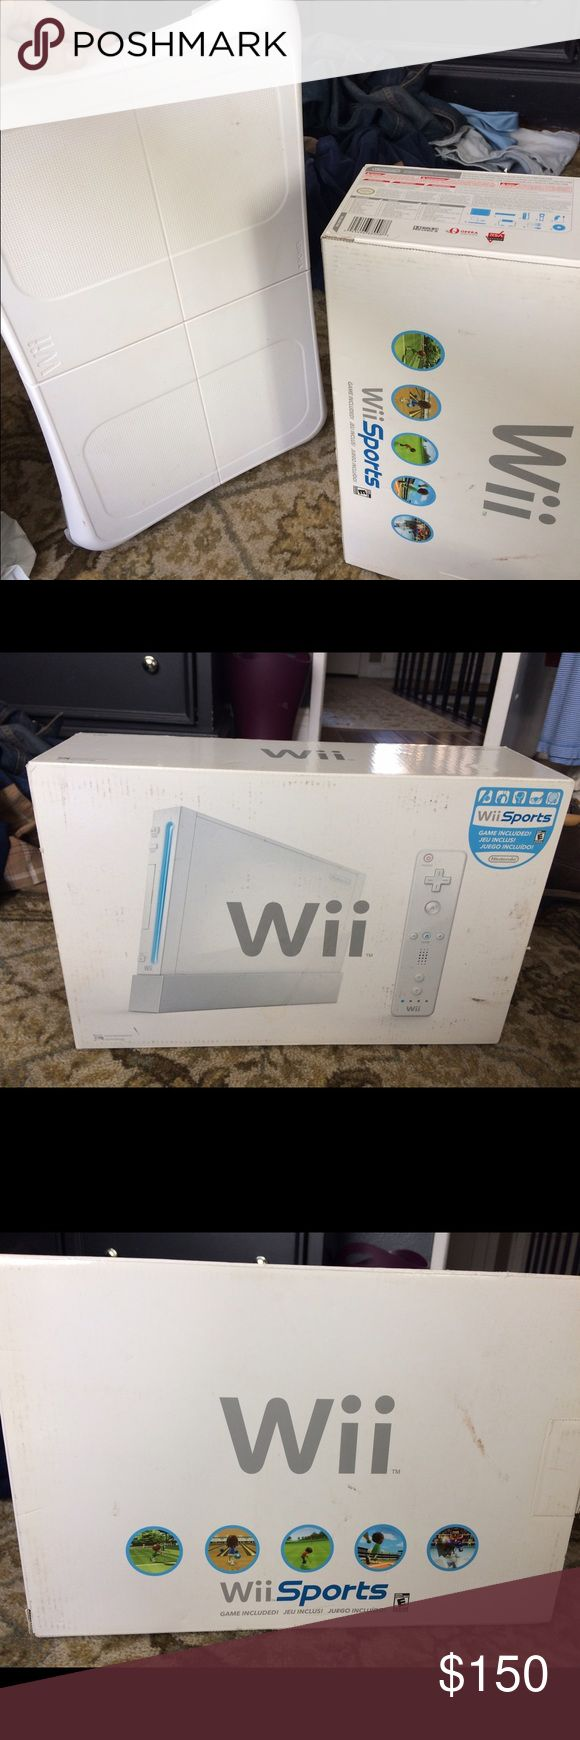 Wii Fit-- Never used! Never used wii fit... includes games as well as the wii fit board. Other